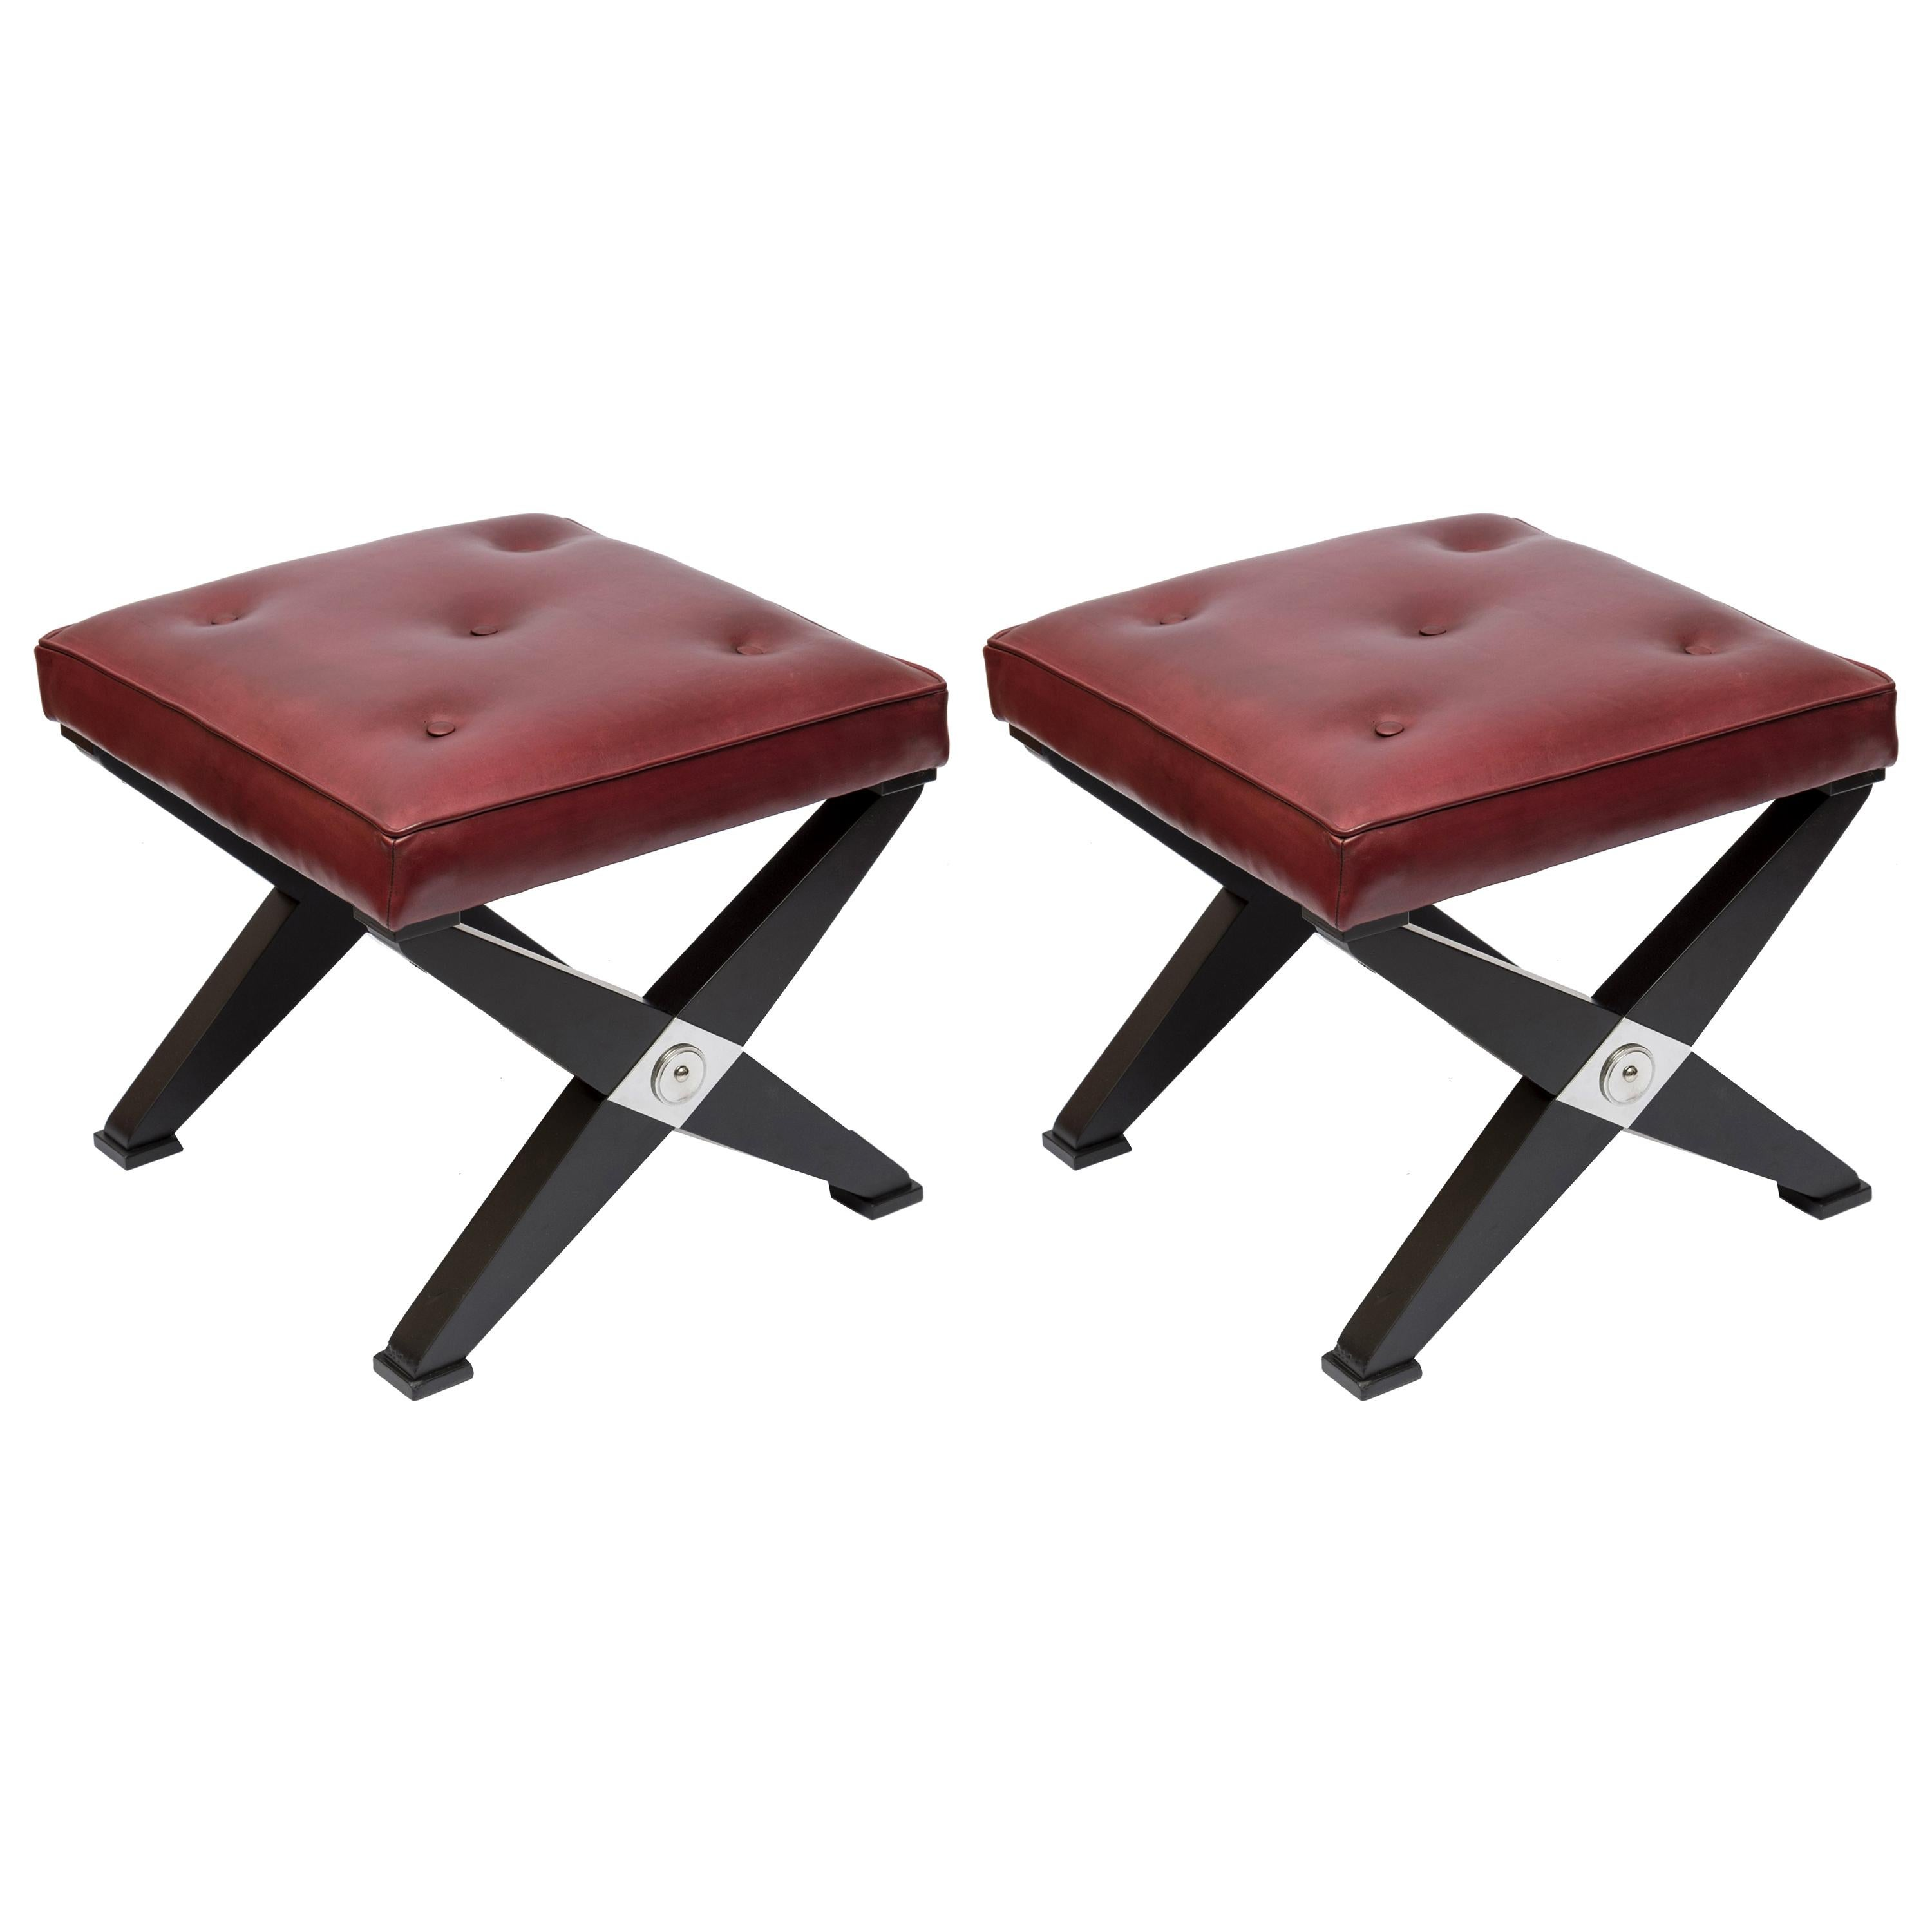 Pair of 1950s Neoclassic Stools in the Style of Jansen